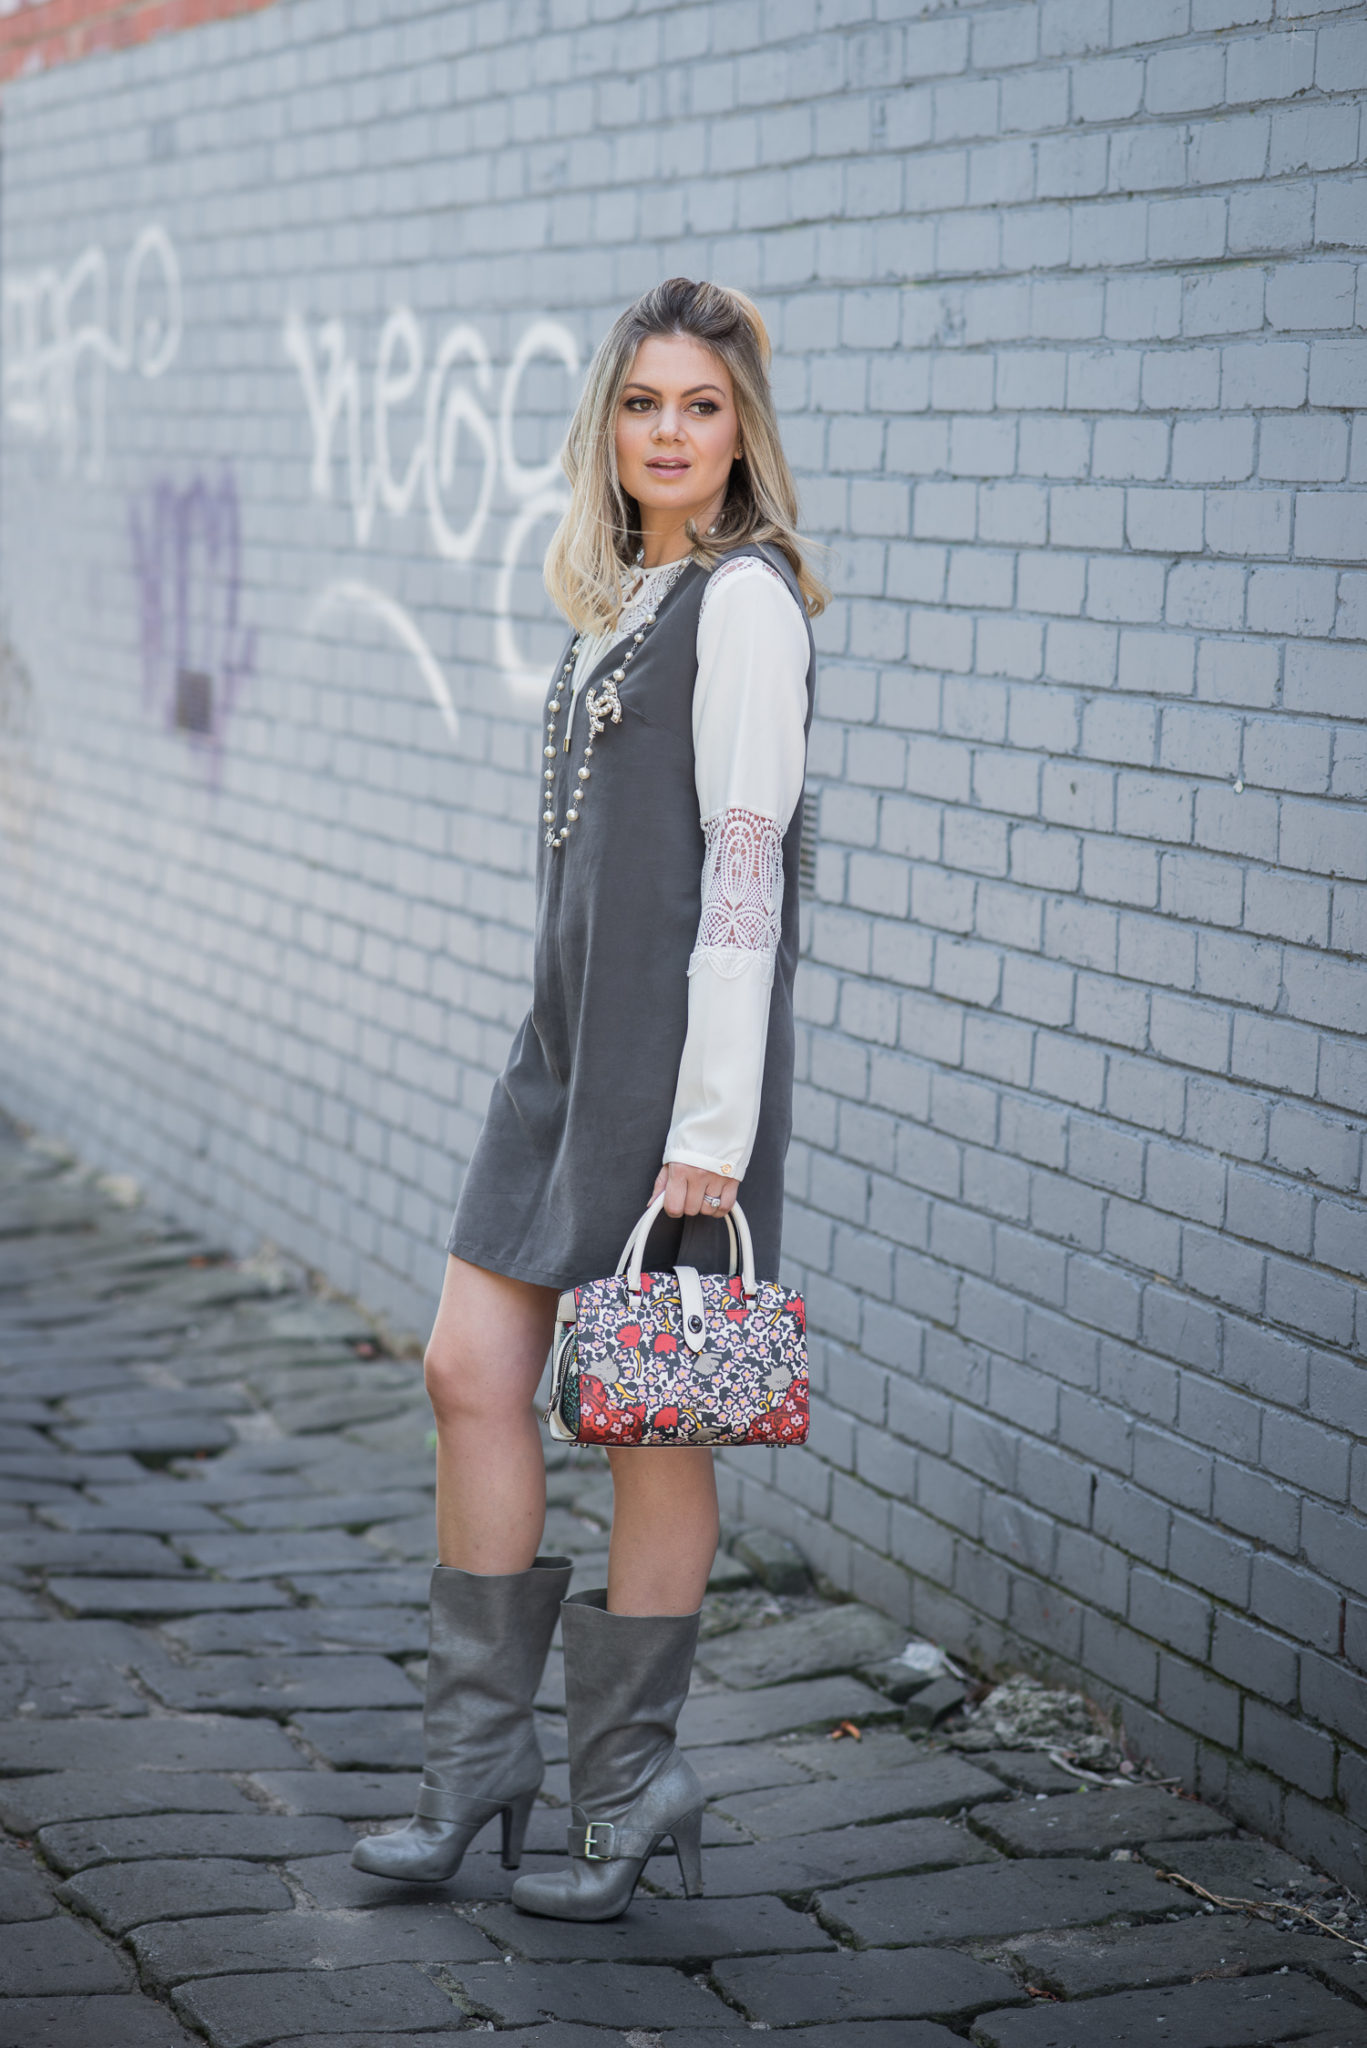 melbourne-street-style-wwkd_0026